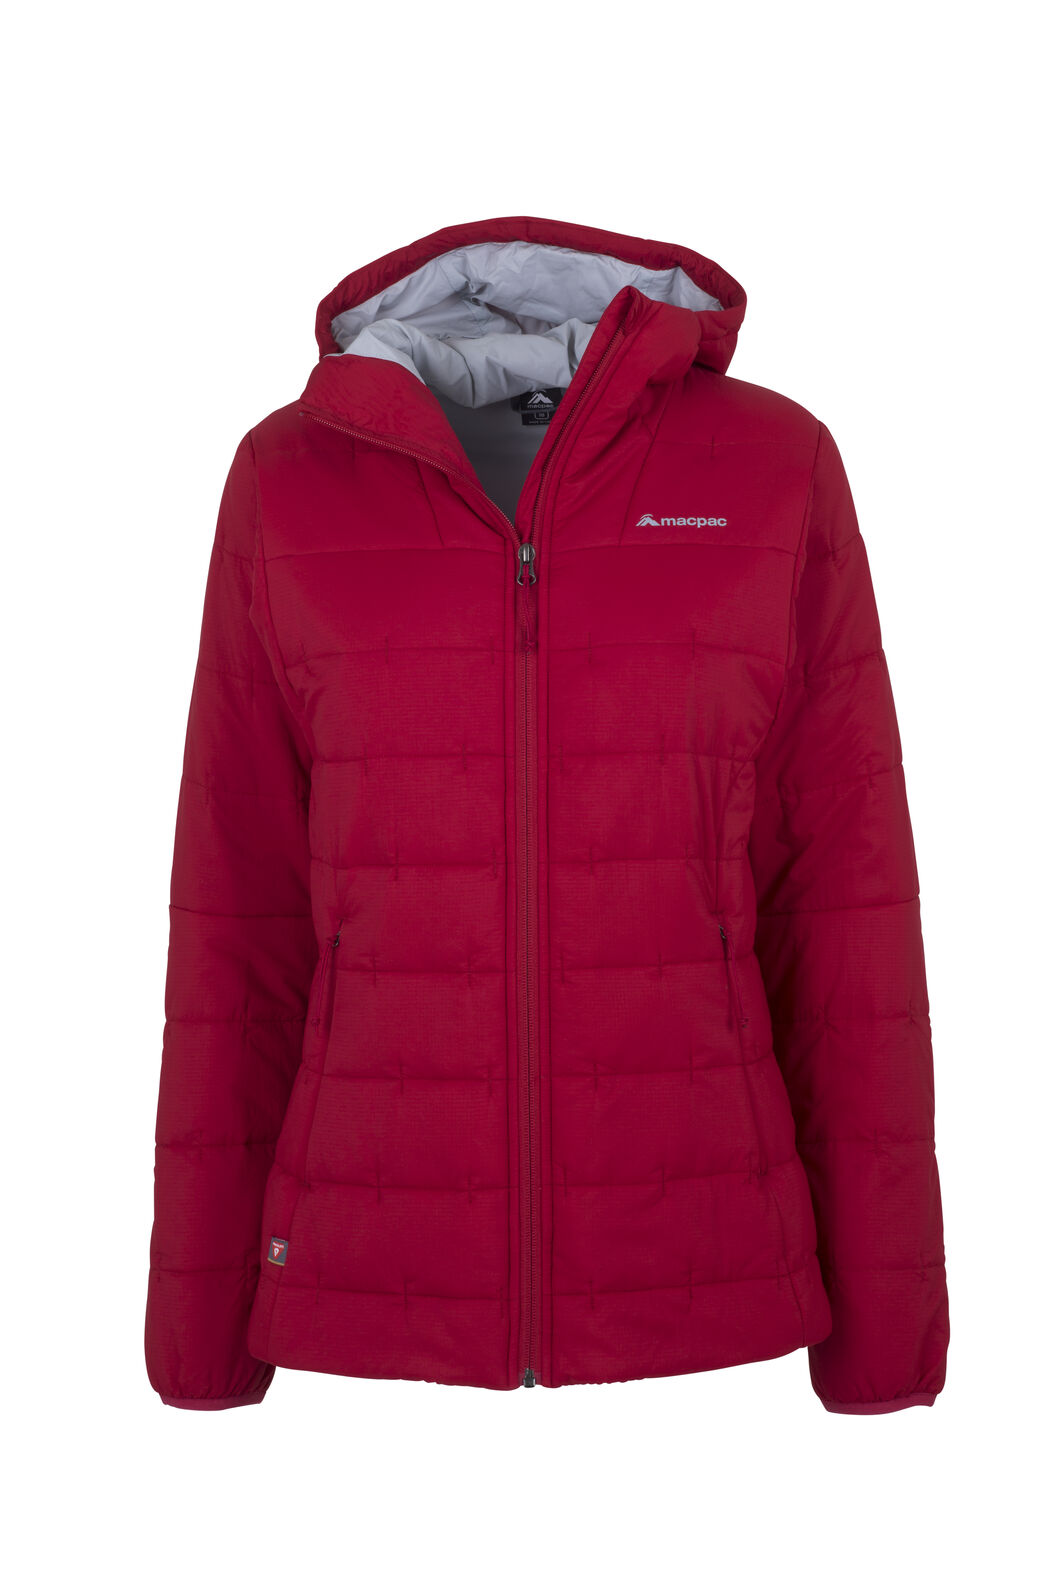 Macpac Southerly PrimaLoft® Jacket - Women's, Jester Red, hi-res